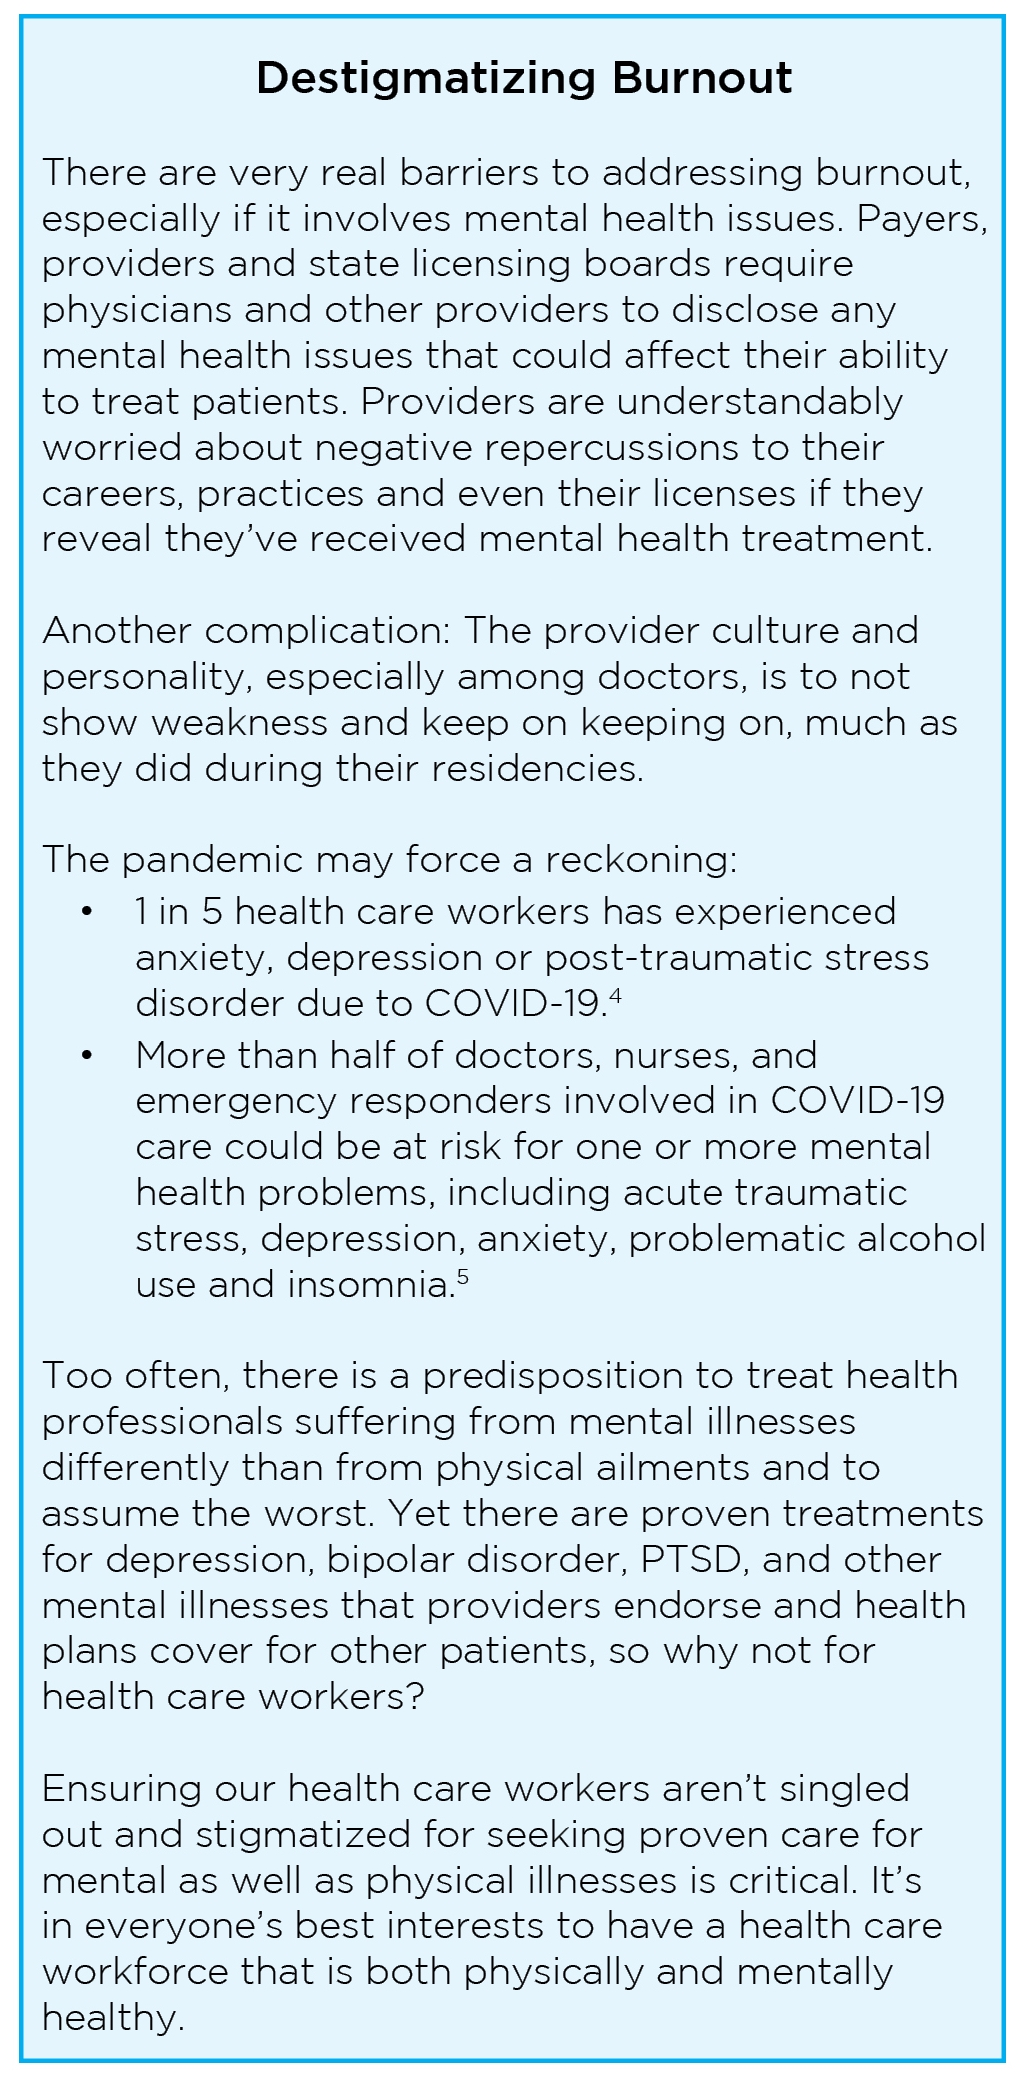 8 Steps to Alleviate Healthcare Worker Burnout From COVID-19 and Beyond